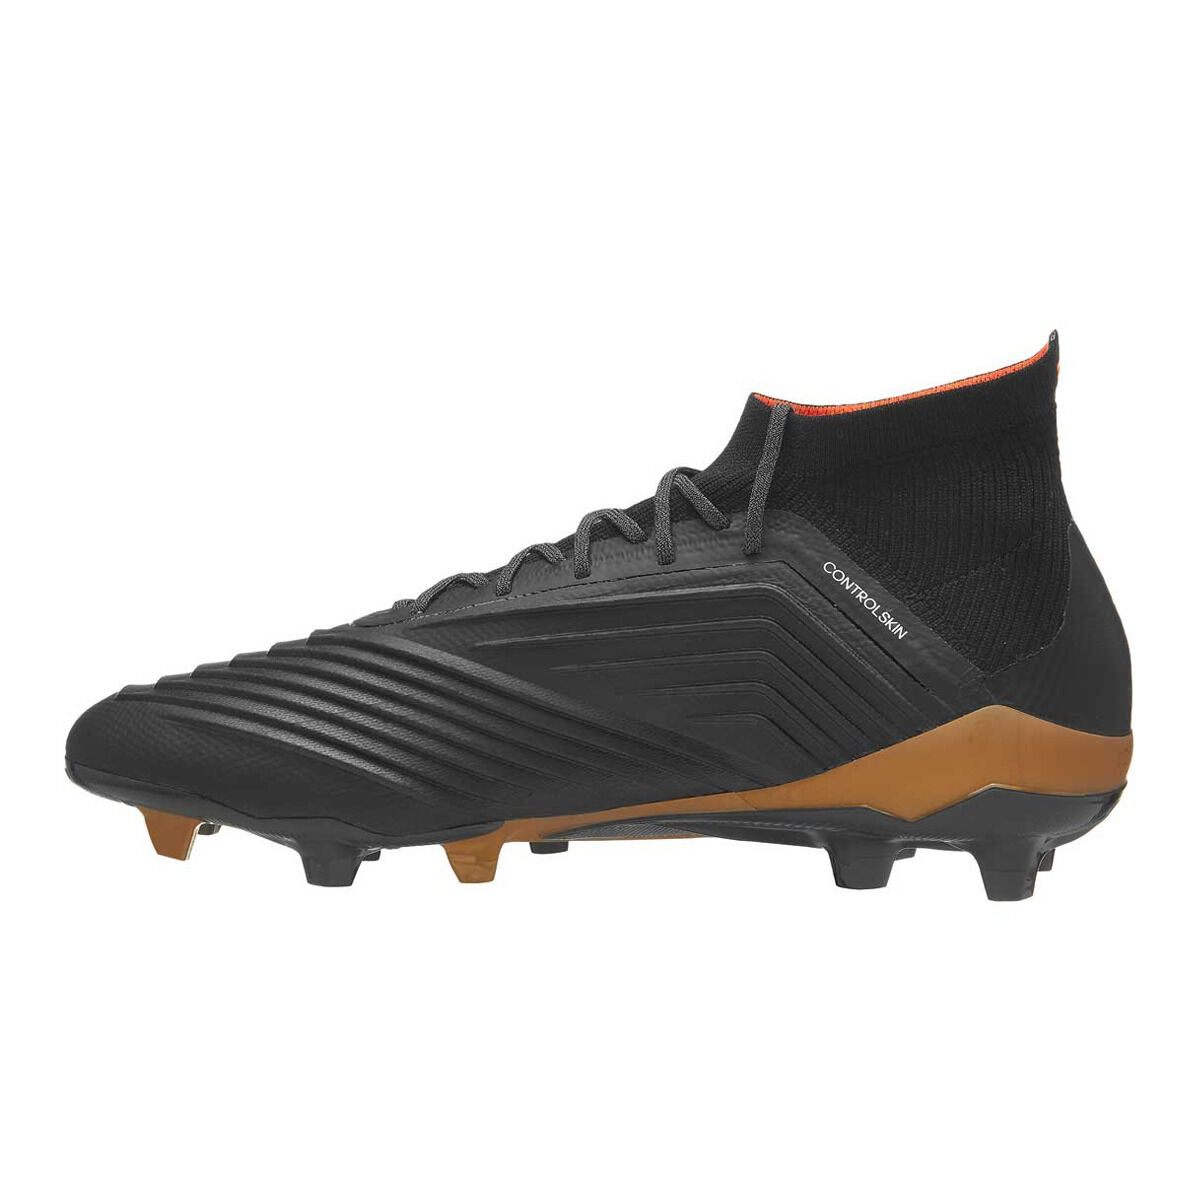 5614ddde2f2 ... reduced adidas predator 18.1 mens football boots black white us 9 adult  black white b8c6e e2078